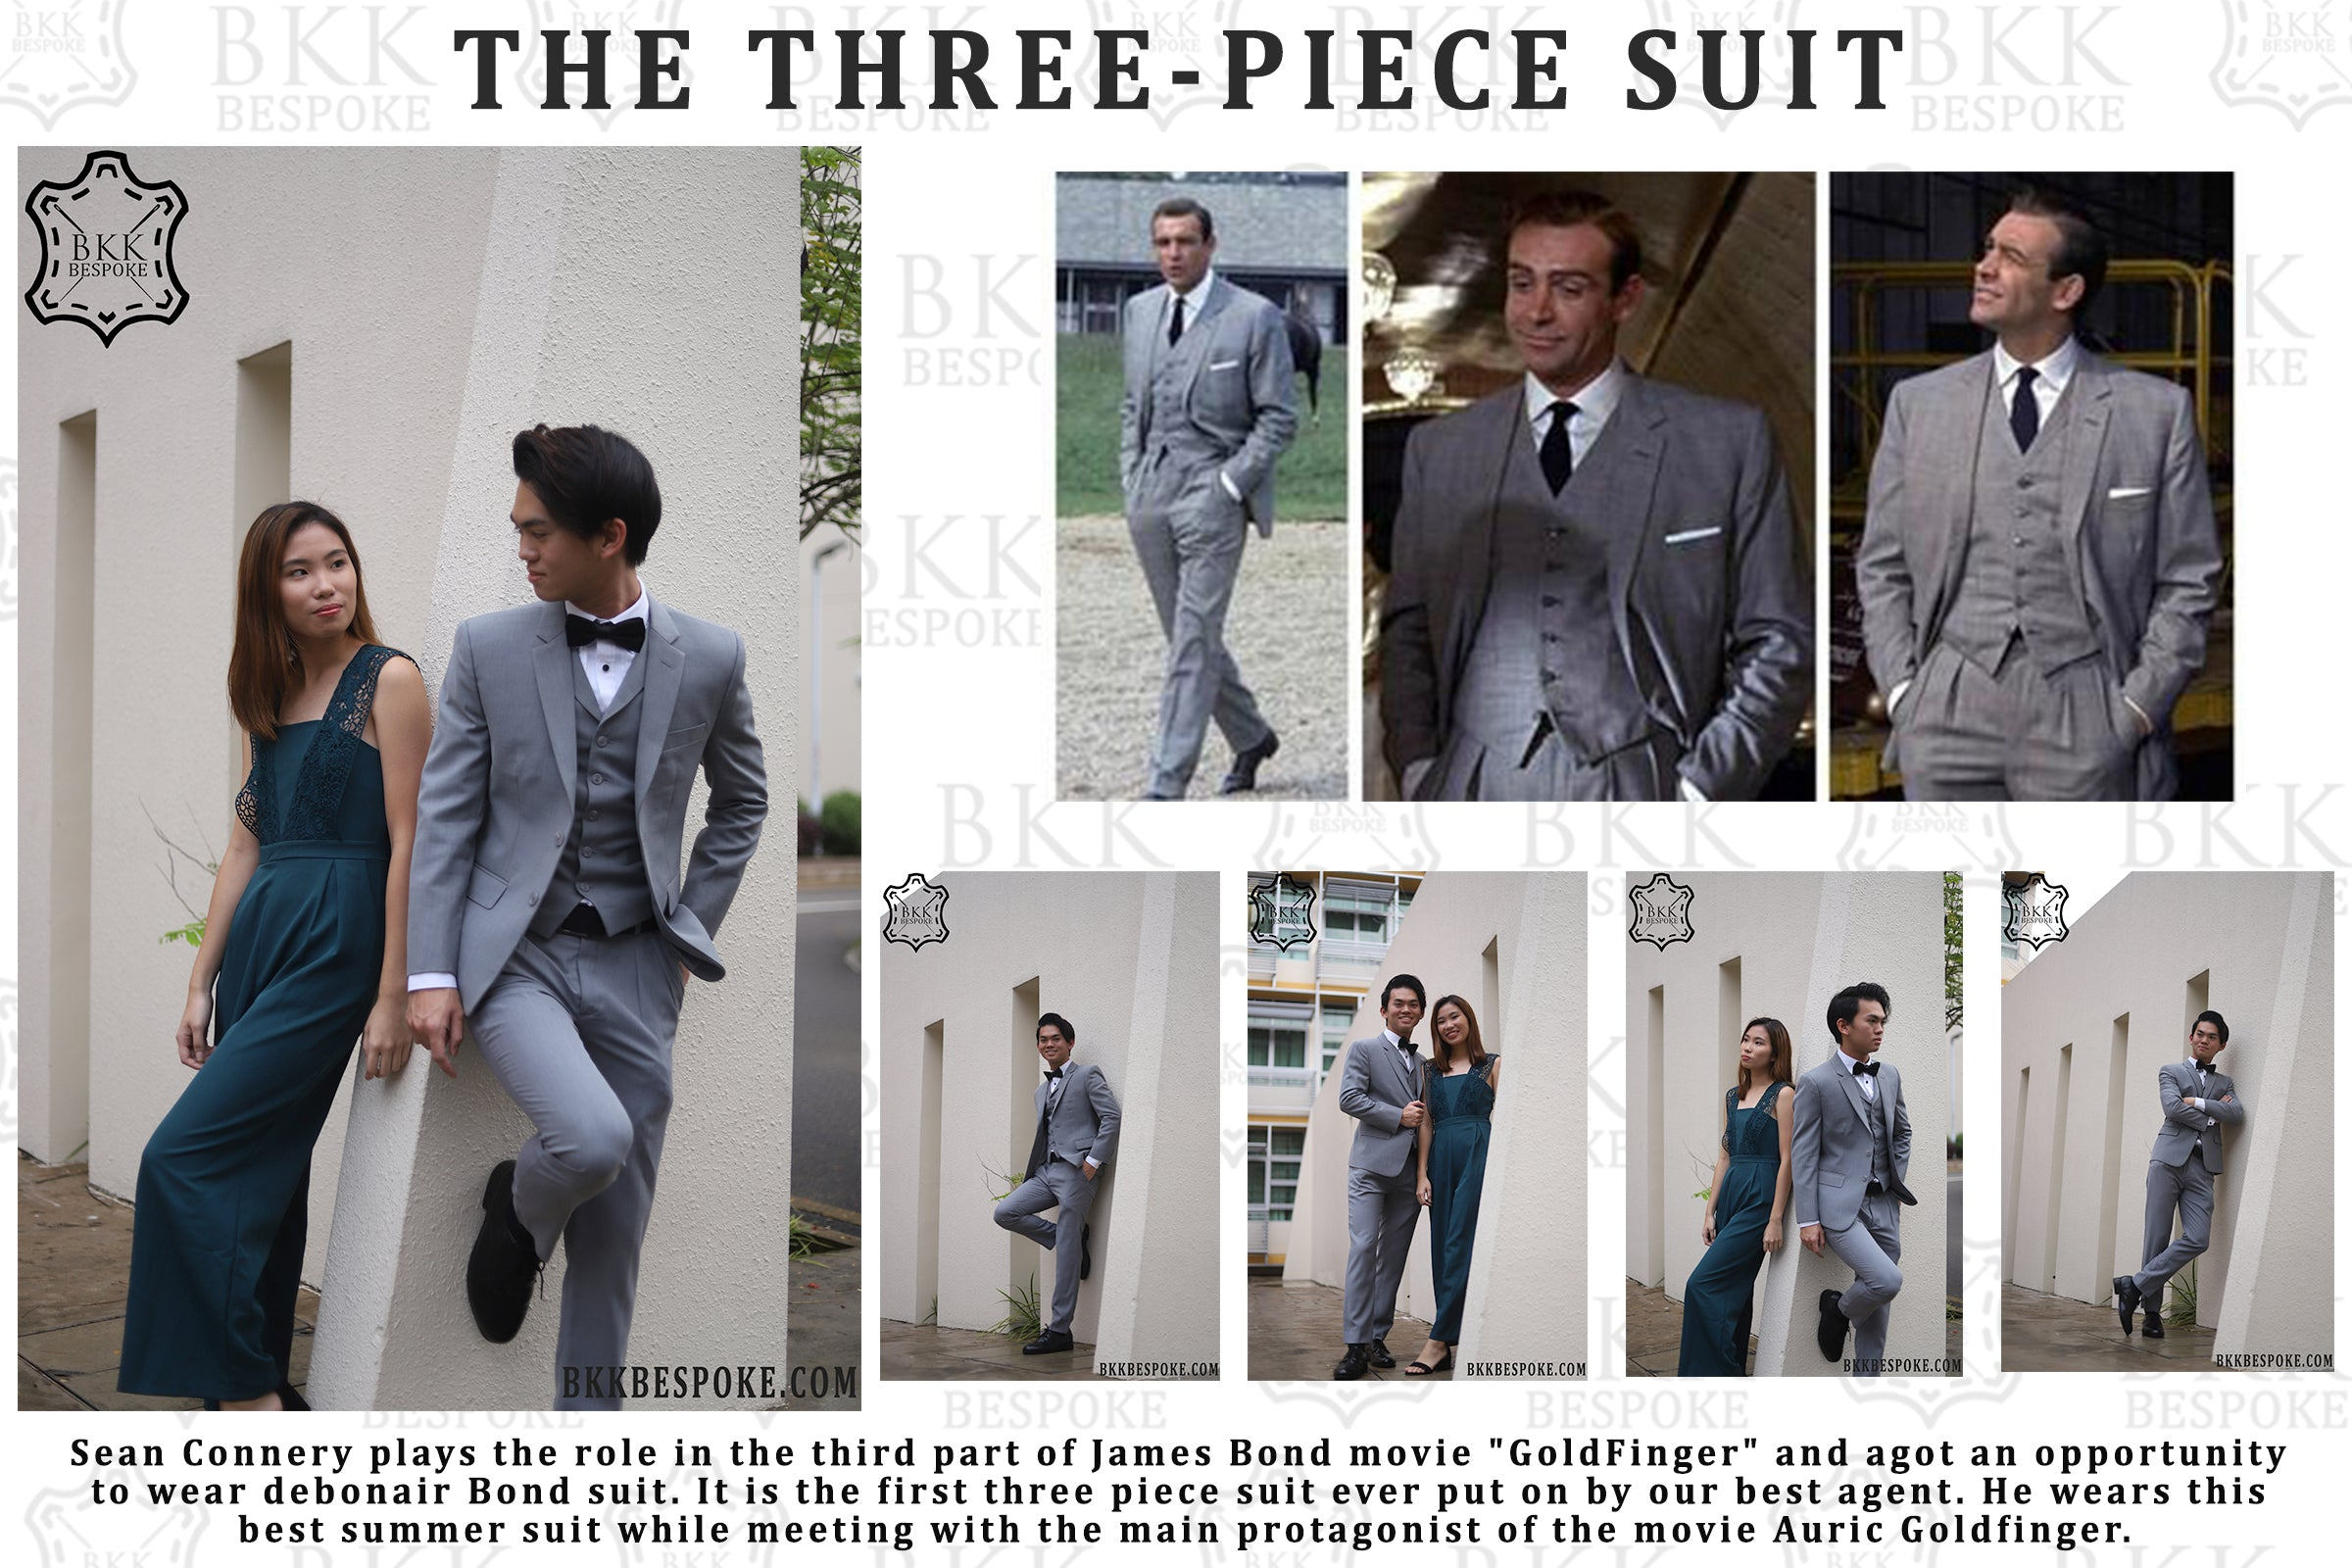 Goldfinger - A Three-Piece-Suit